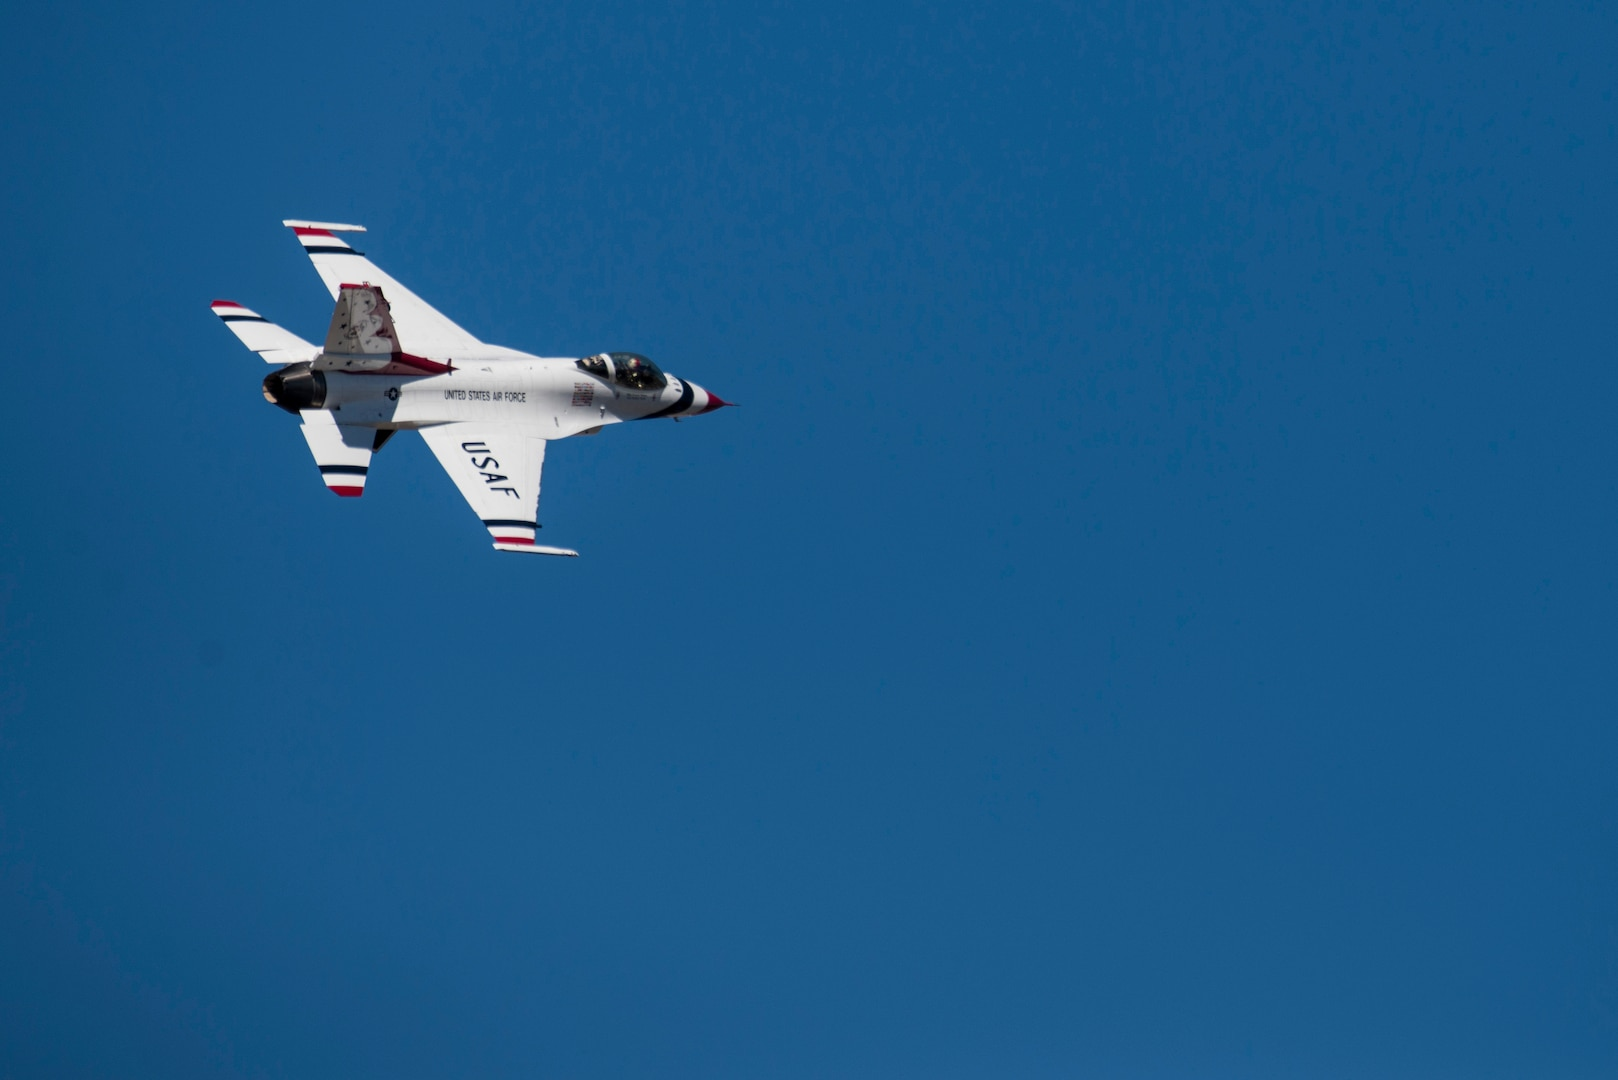 """A member of the U.S. Air Force Aerial Demonstration Squadron """"Thunderbirds"""" flies over Joint Base San Antonio-Randolph Oct. 26, 2015. The Thuderbirds perform aerial demonstrations to highlight the unique capabilities of American military services, while showcasing the world's most technologically advanced air and space force capabilities."""